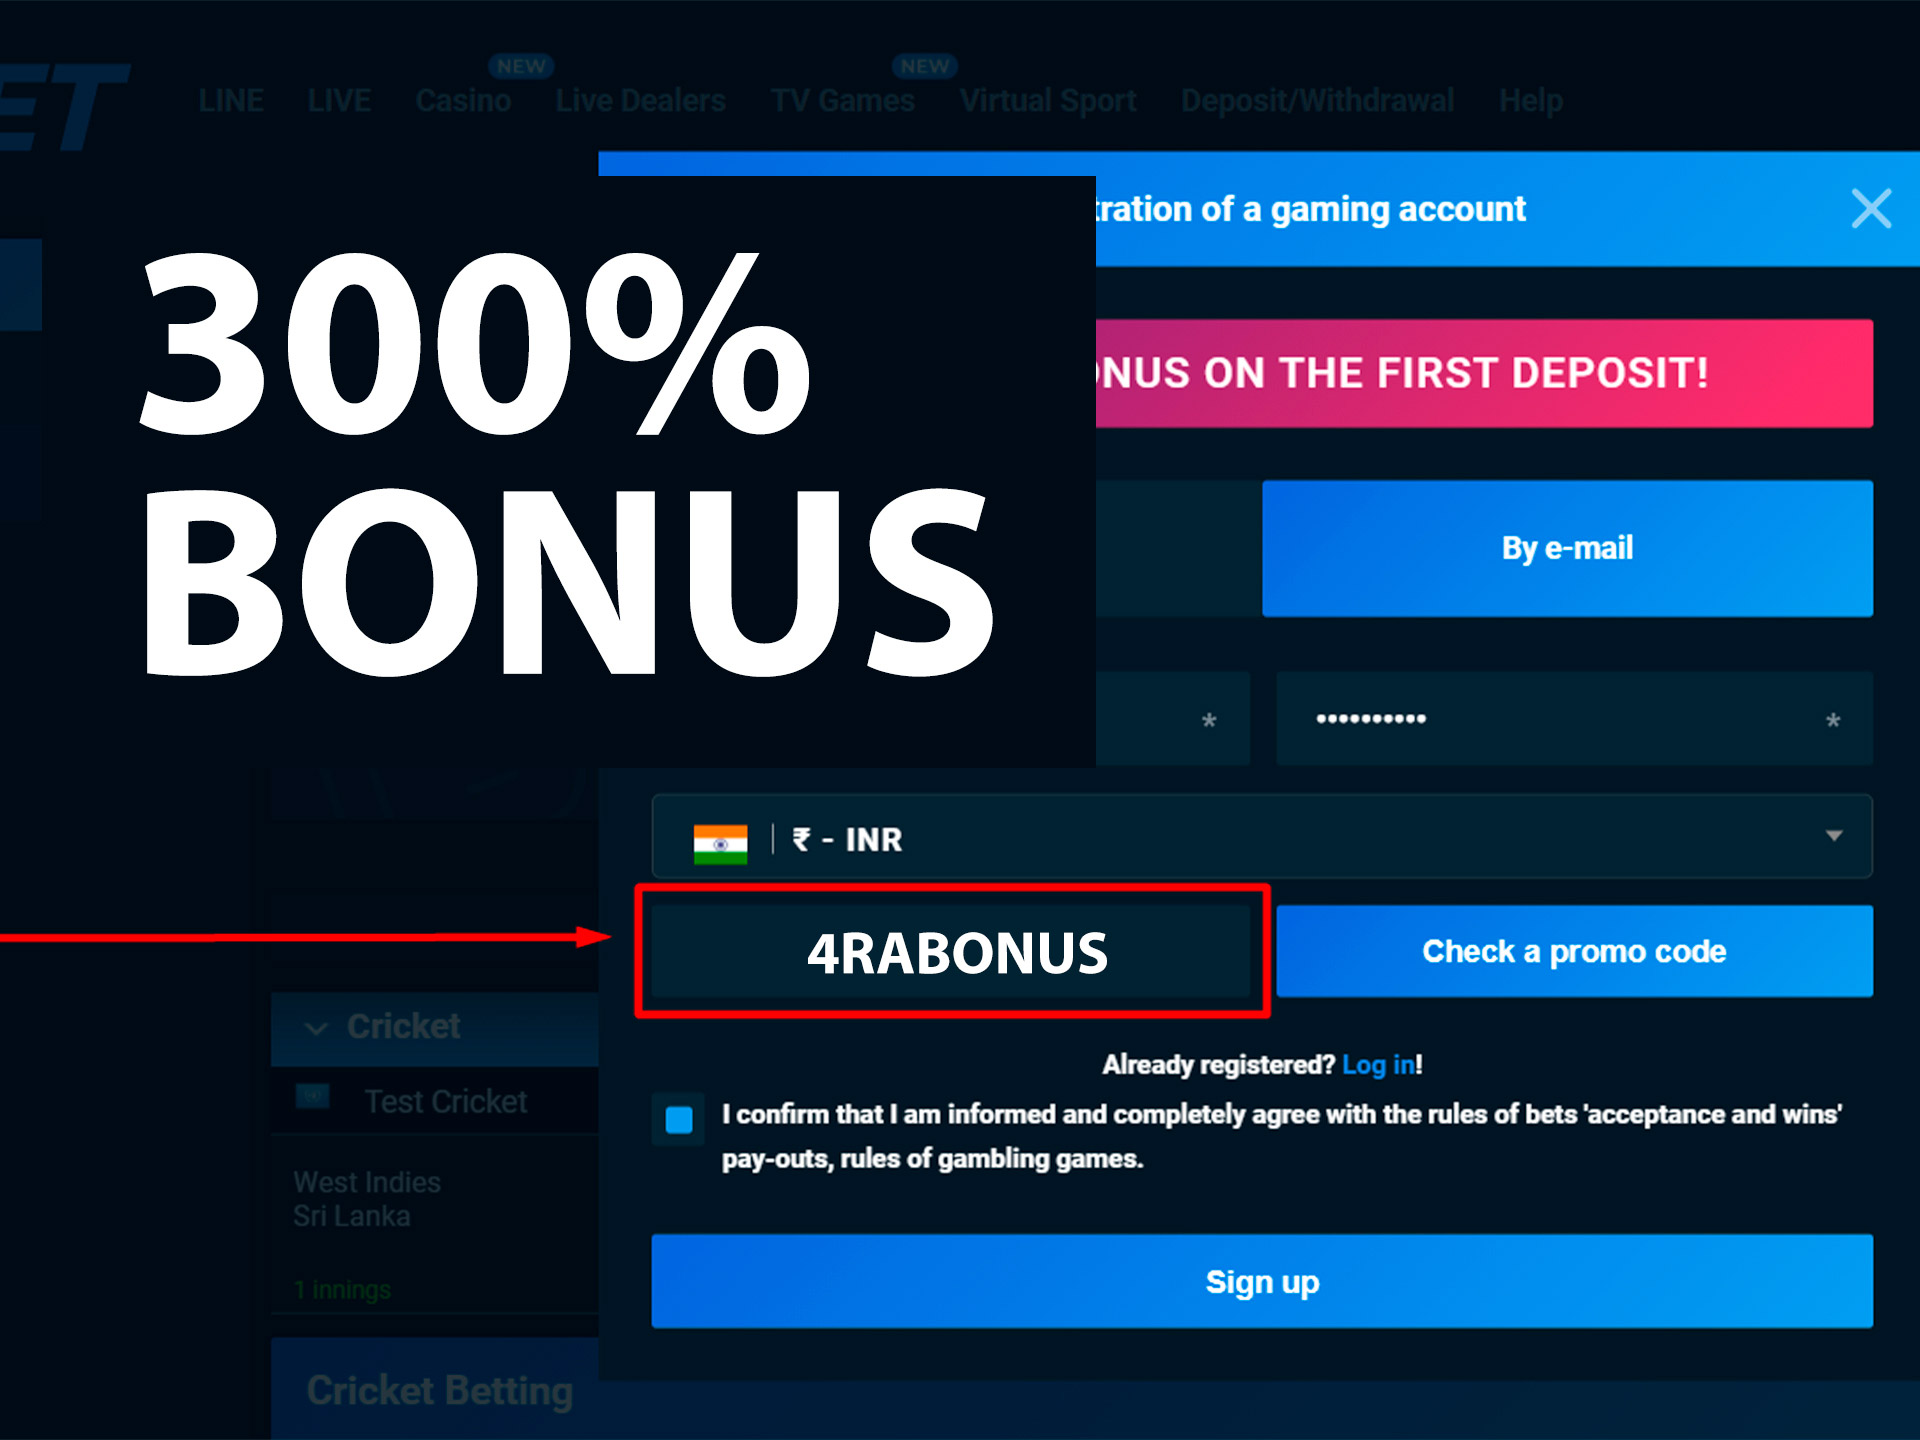 Enter our promo code while registering and get 300% bonus on your deposit.